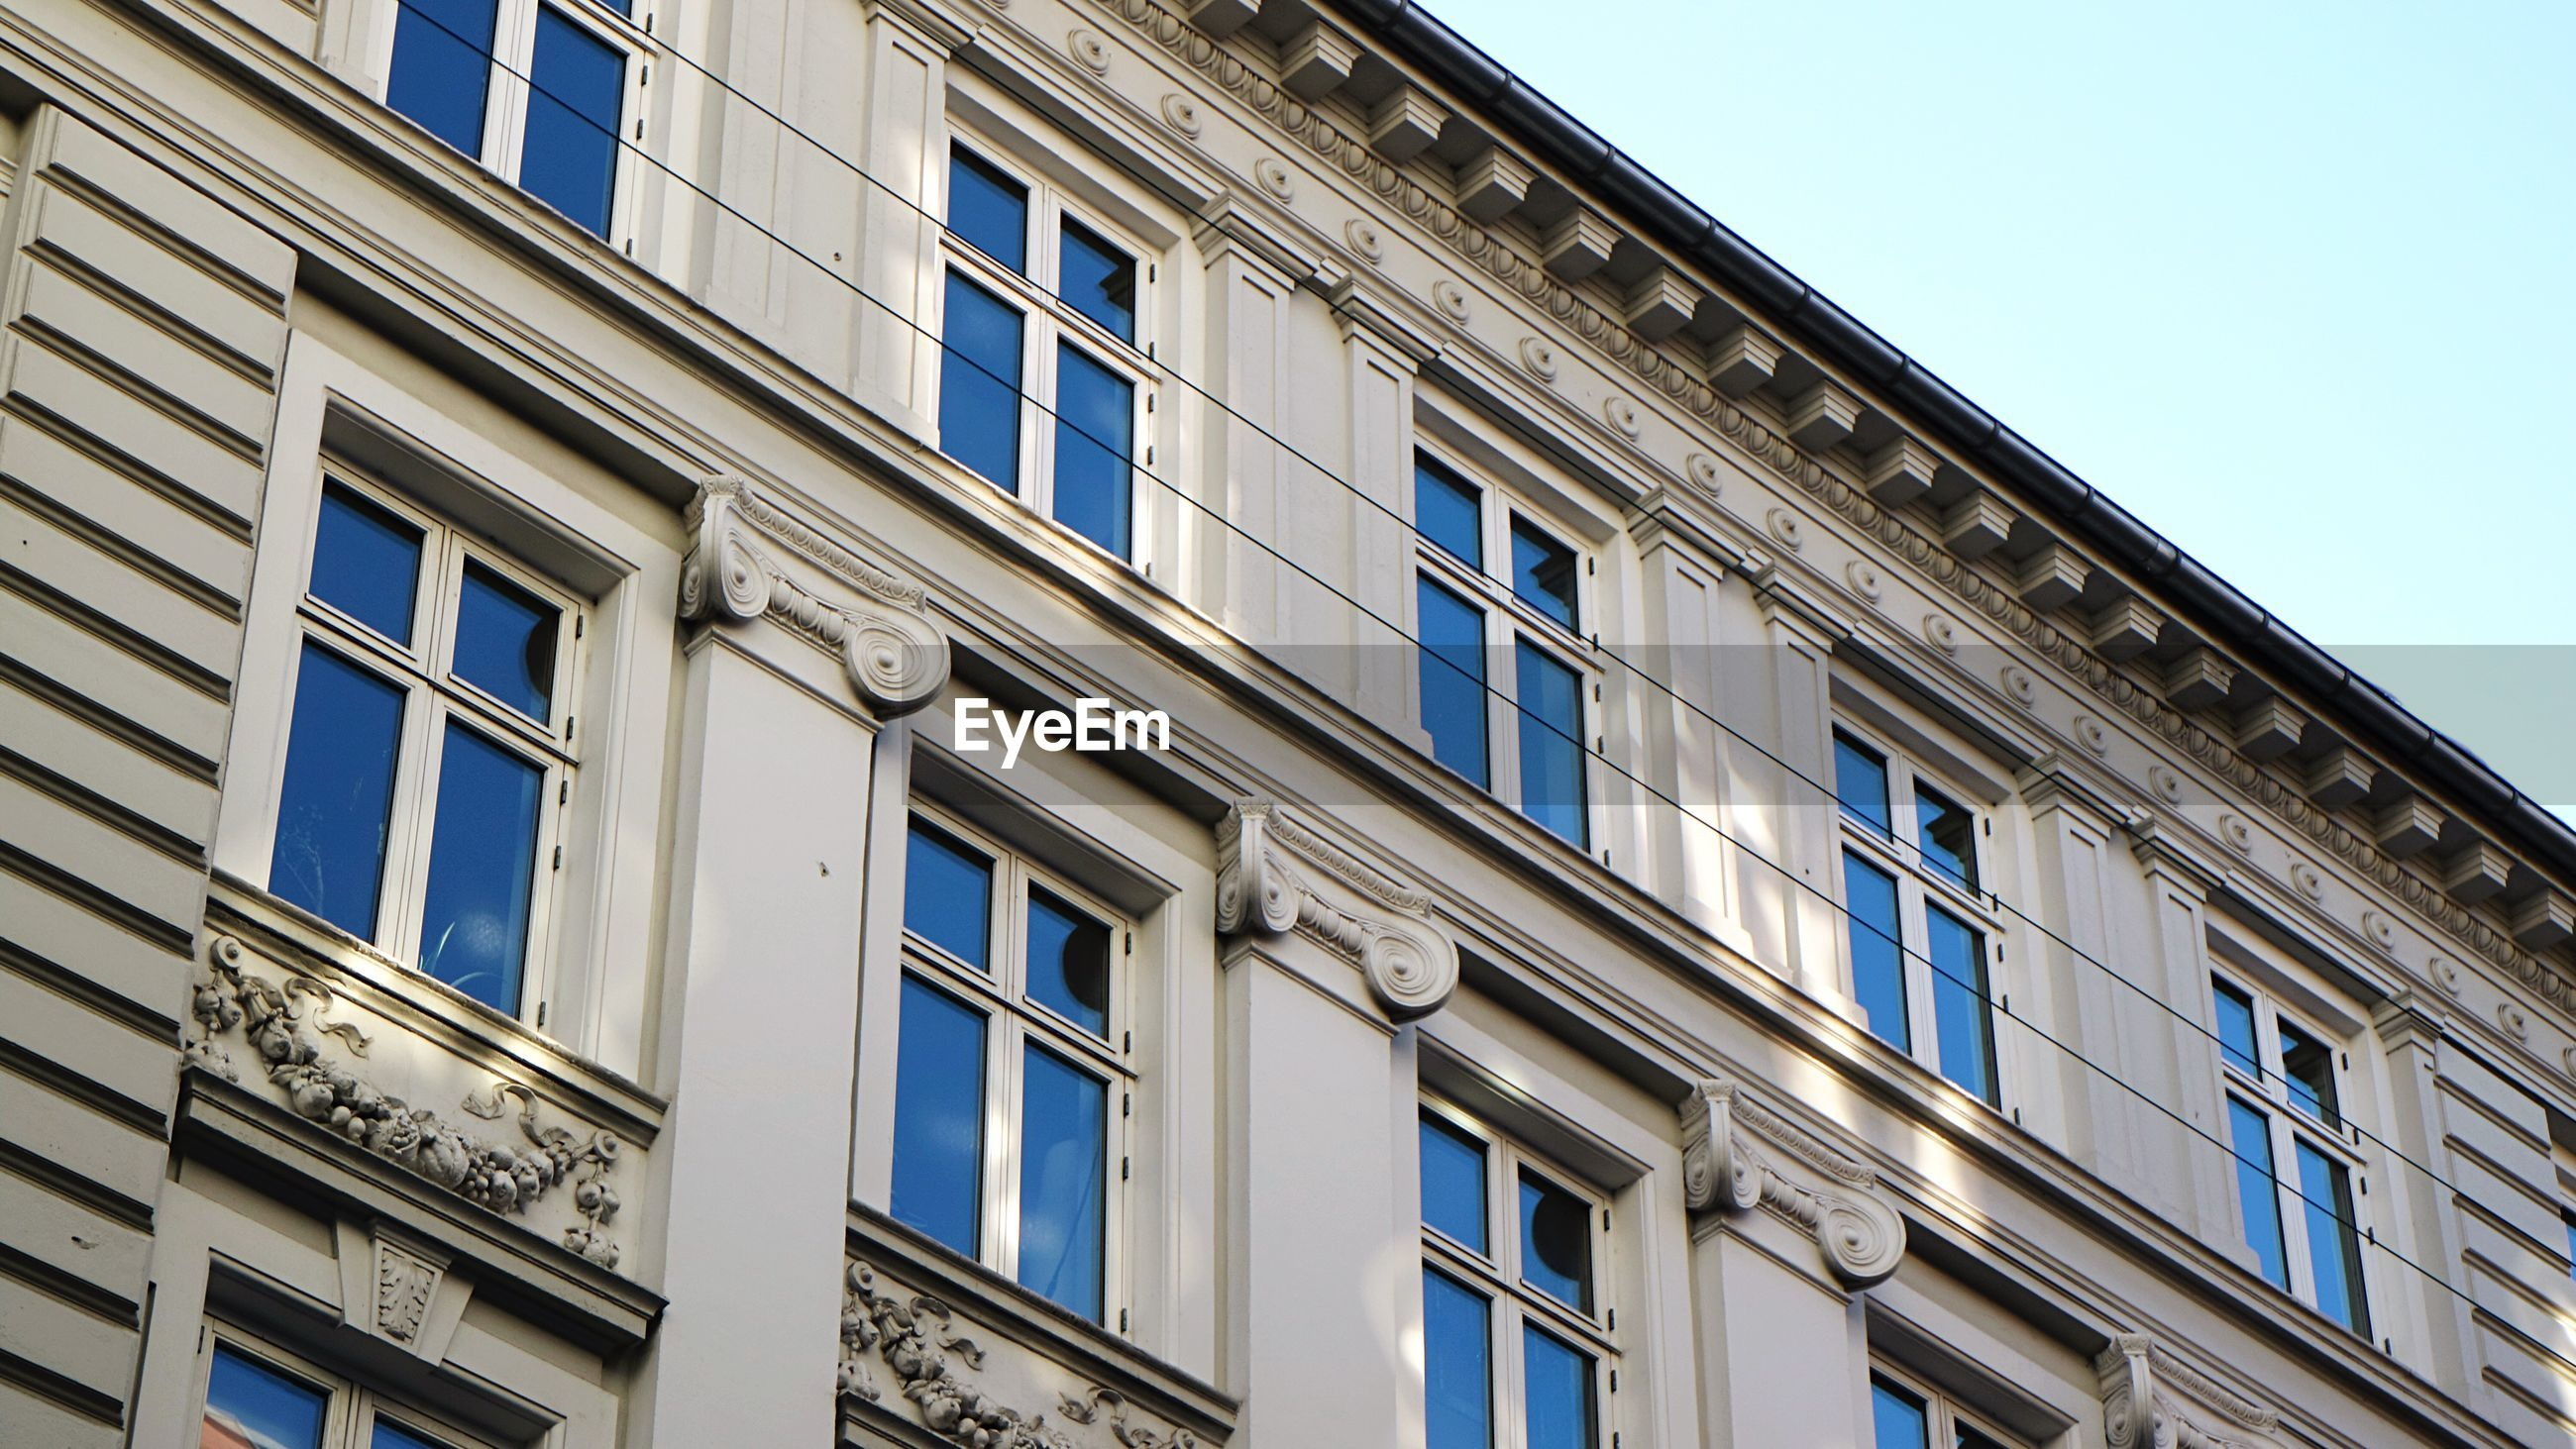 LOW ANGLE VIEW OF BUILDING WITH WINDOWS